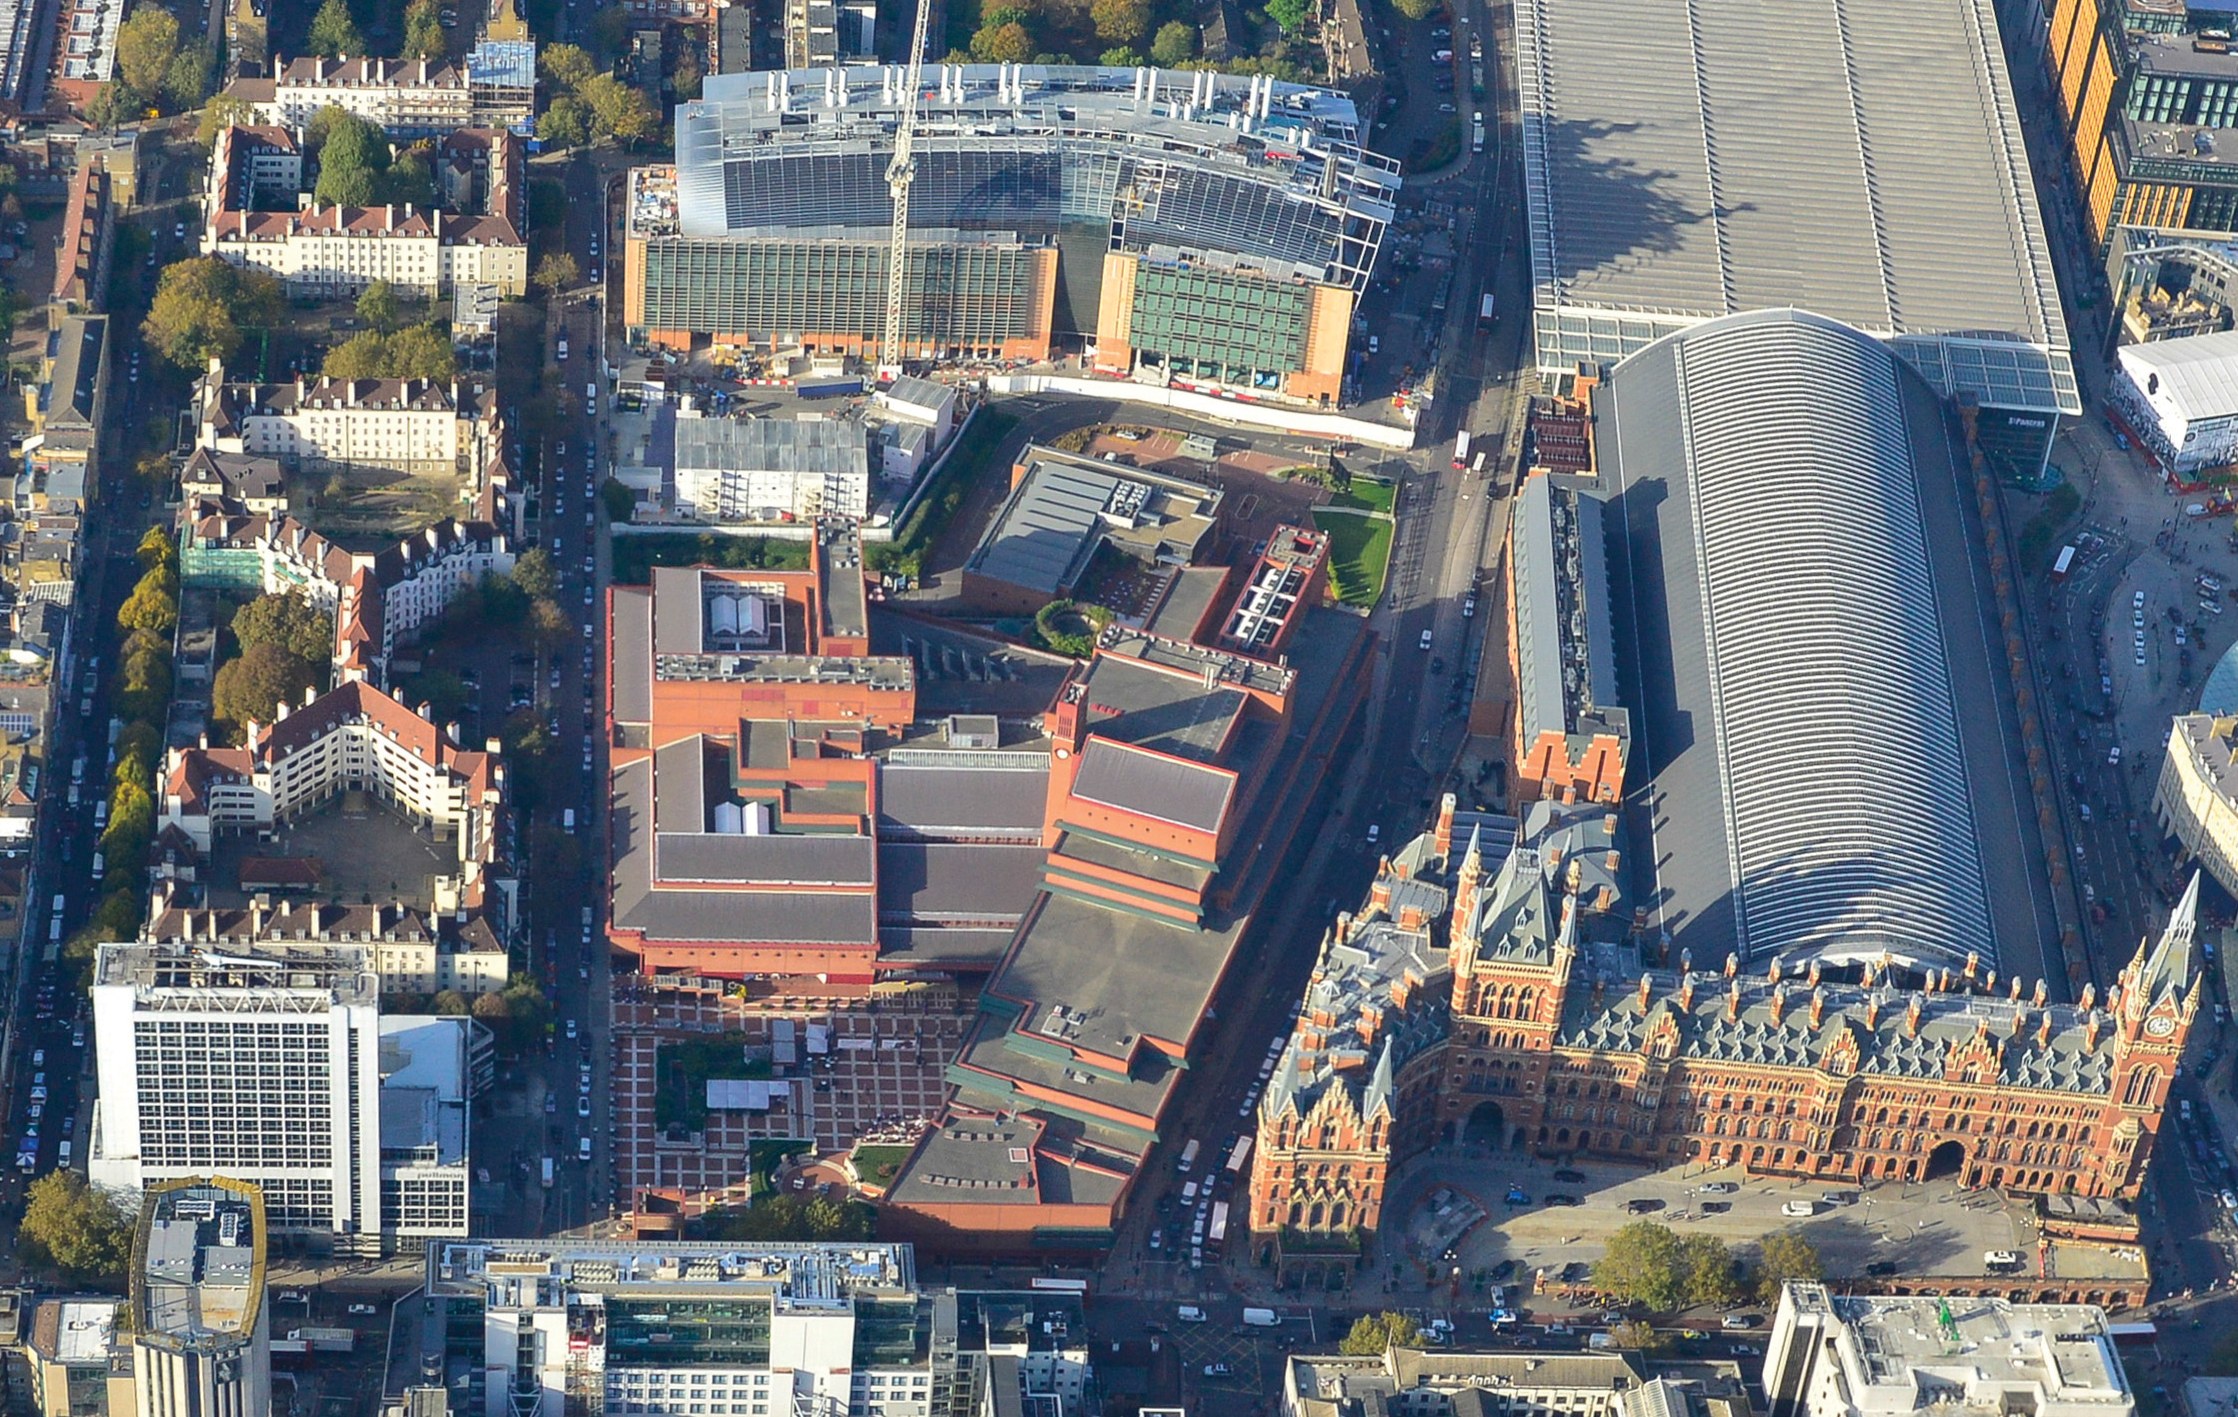 British Library at St Pancras site and surroundings, including (centre) the British Library, (right) St Pancras station, (top) the Francis Crick Institute. Photo by Ian Hay.